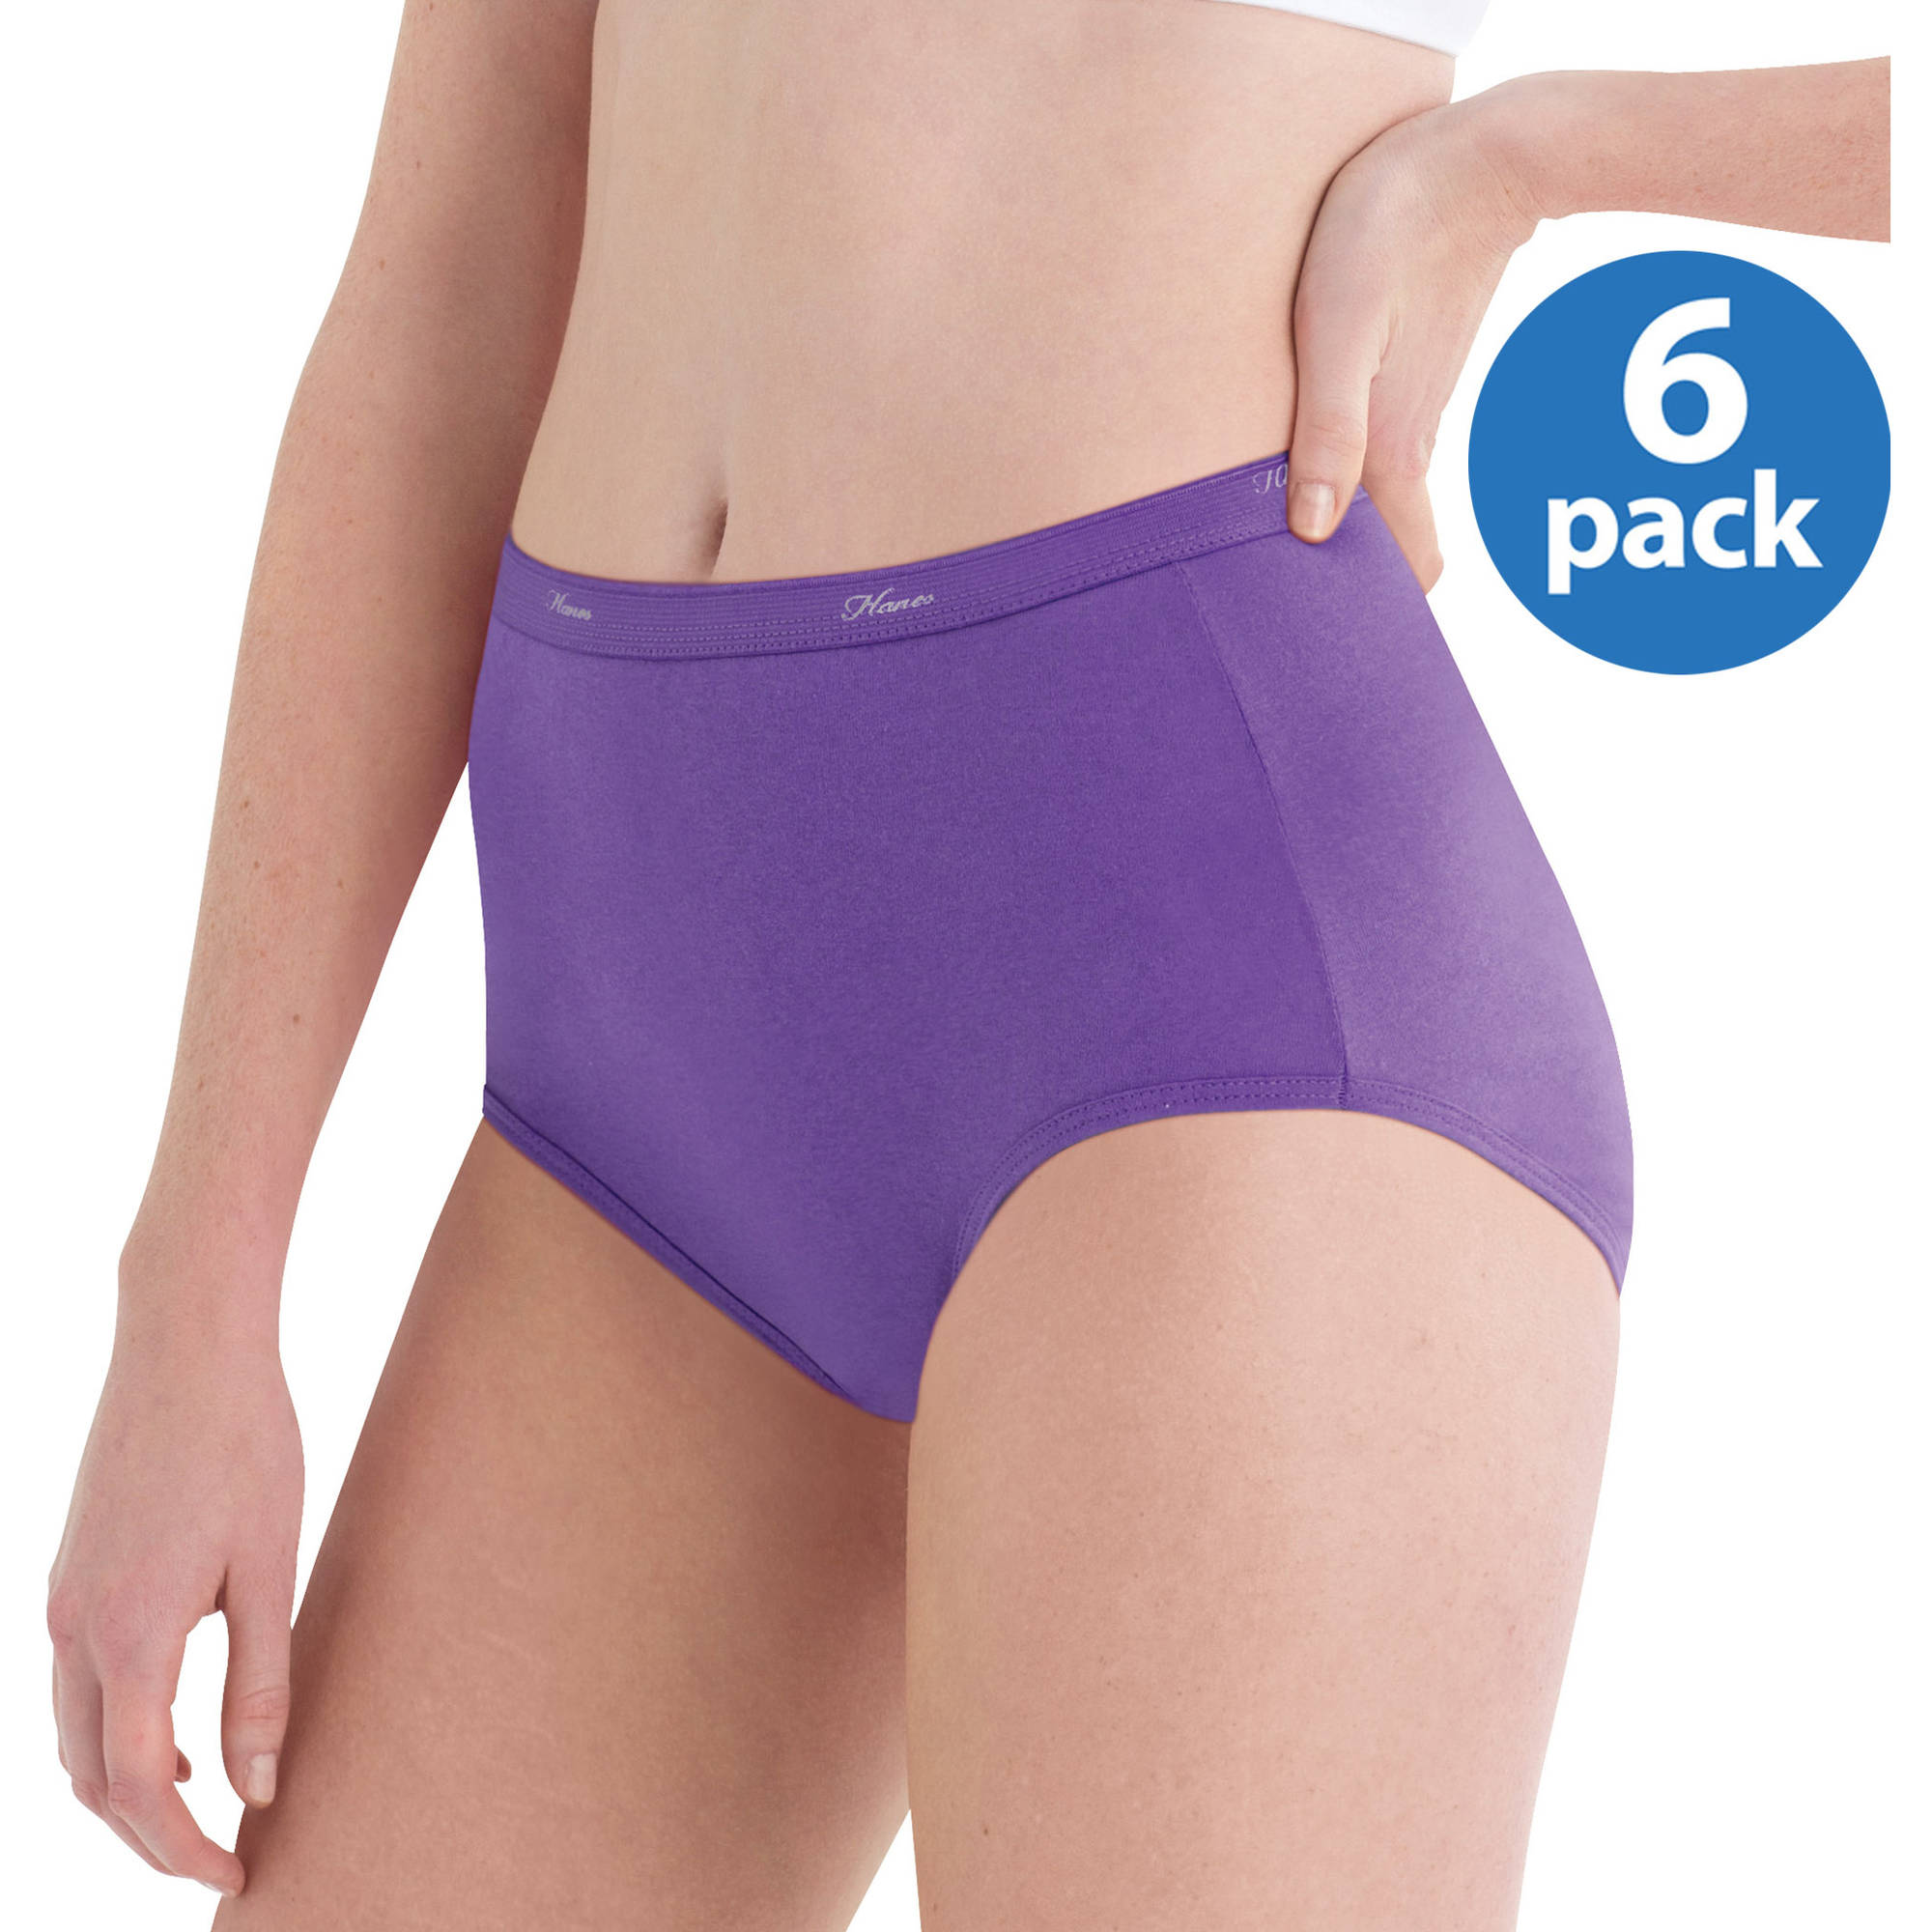 Hanes Women's LLC Cotton Brief Panties 6-Pack